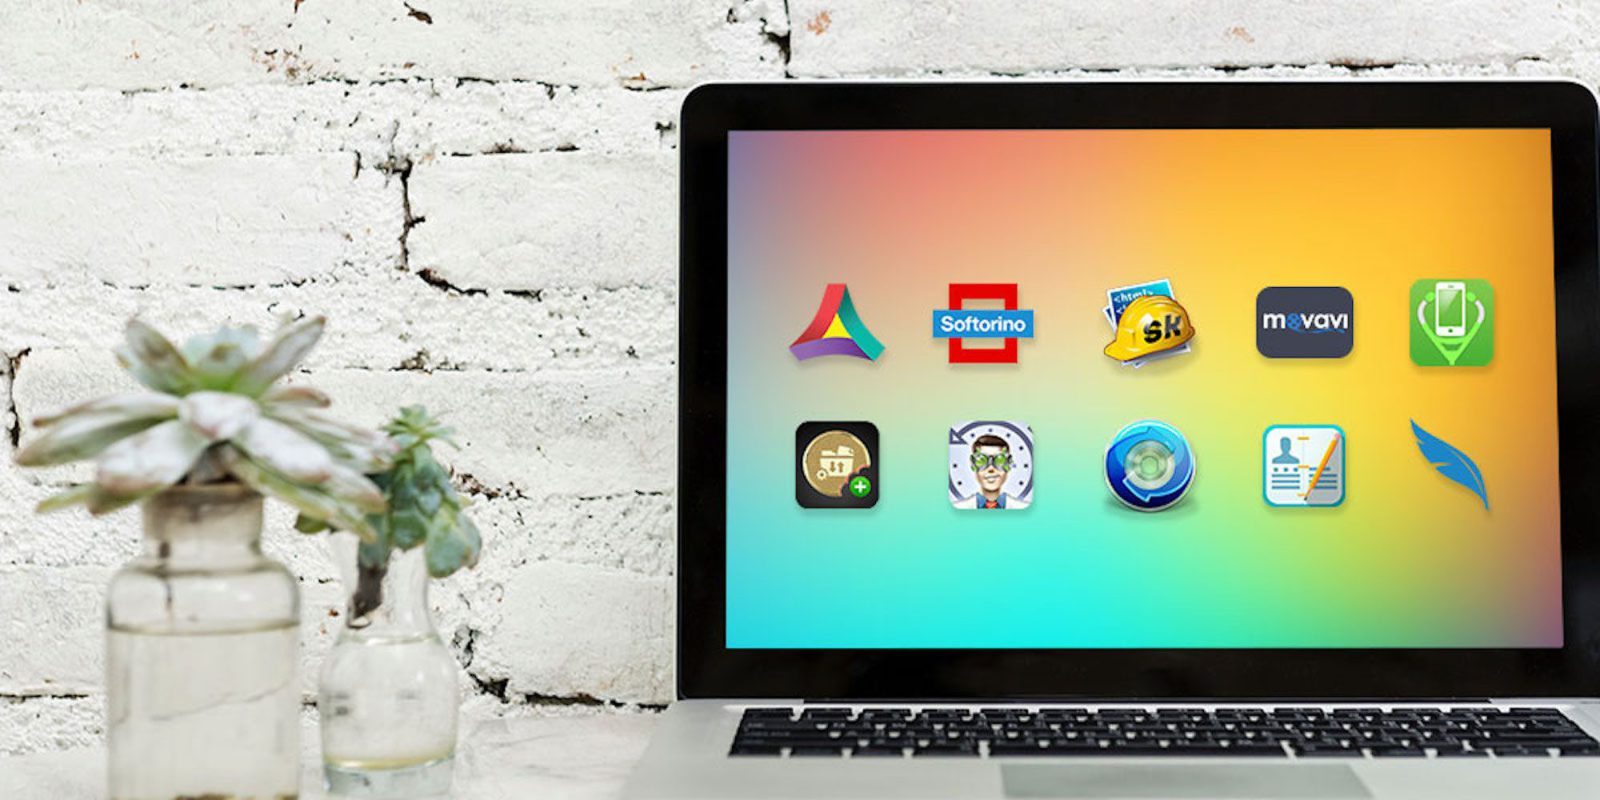 Beat the avg. price at $1 and rising to score the entire 2018 Super Mac Bundle beat-the-avg-price-at-1-and-rising-to-score-the-entire-2018-super-mac-bundle